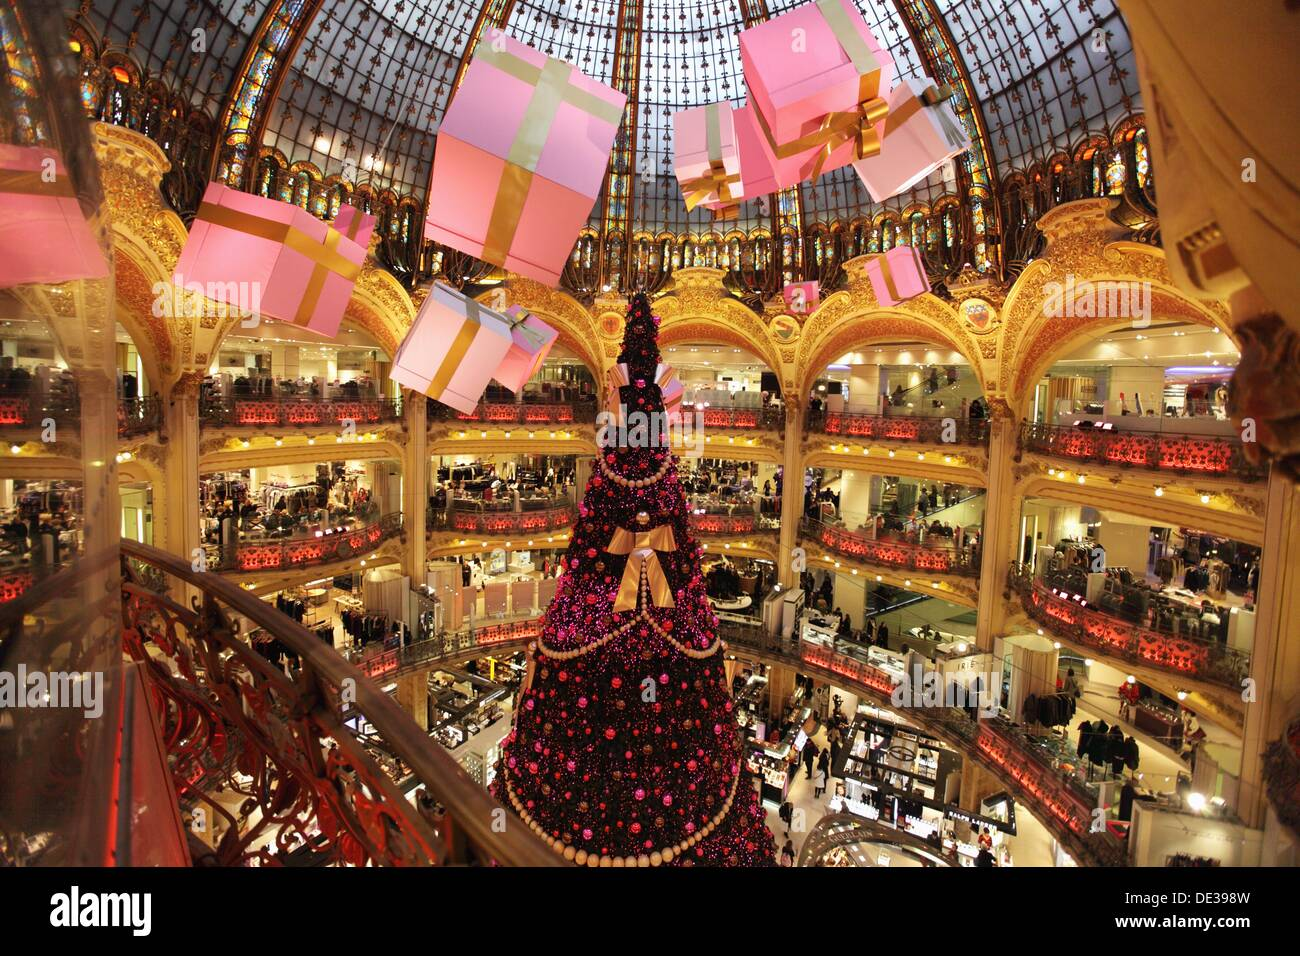 Perfect Christmas Decorations In Galeries Lafayette Department Store, Paris,  Île De France, France